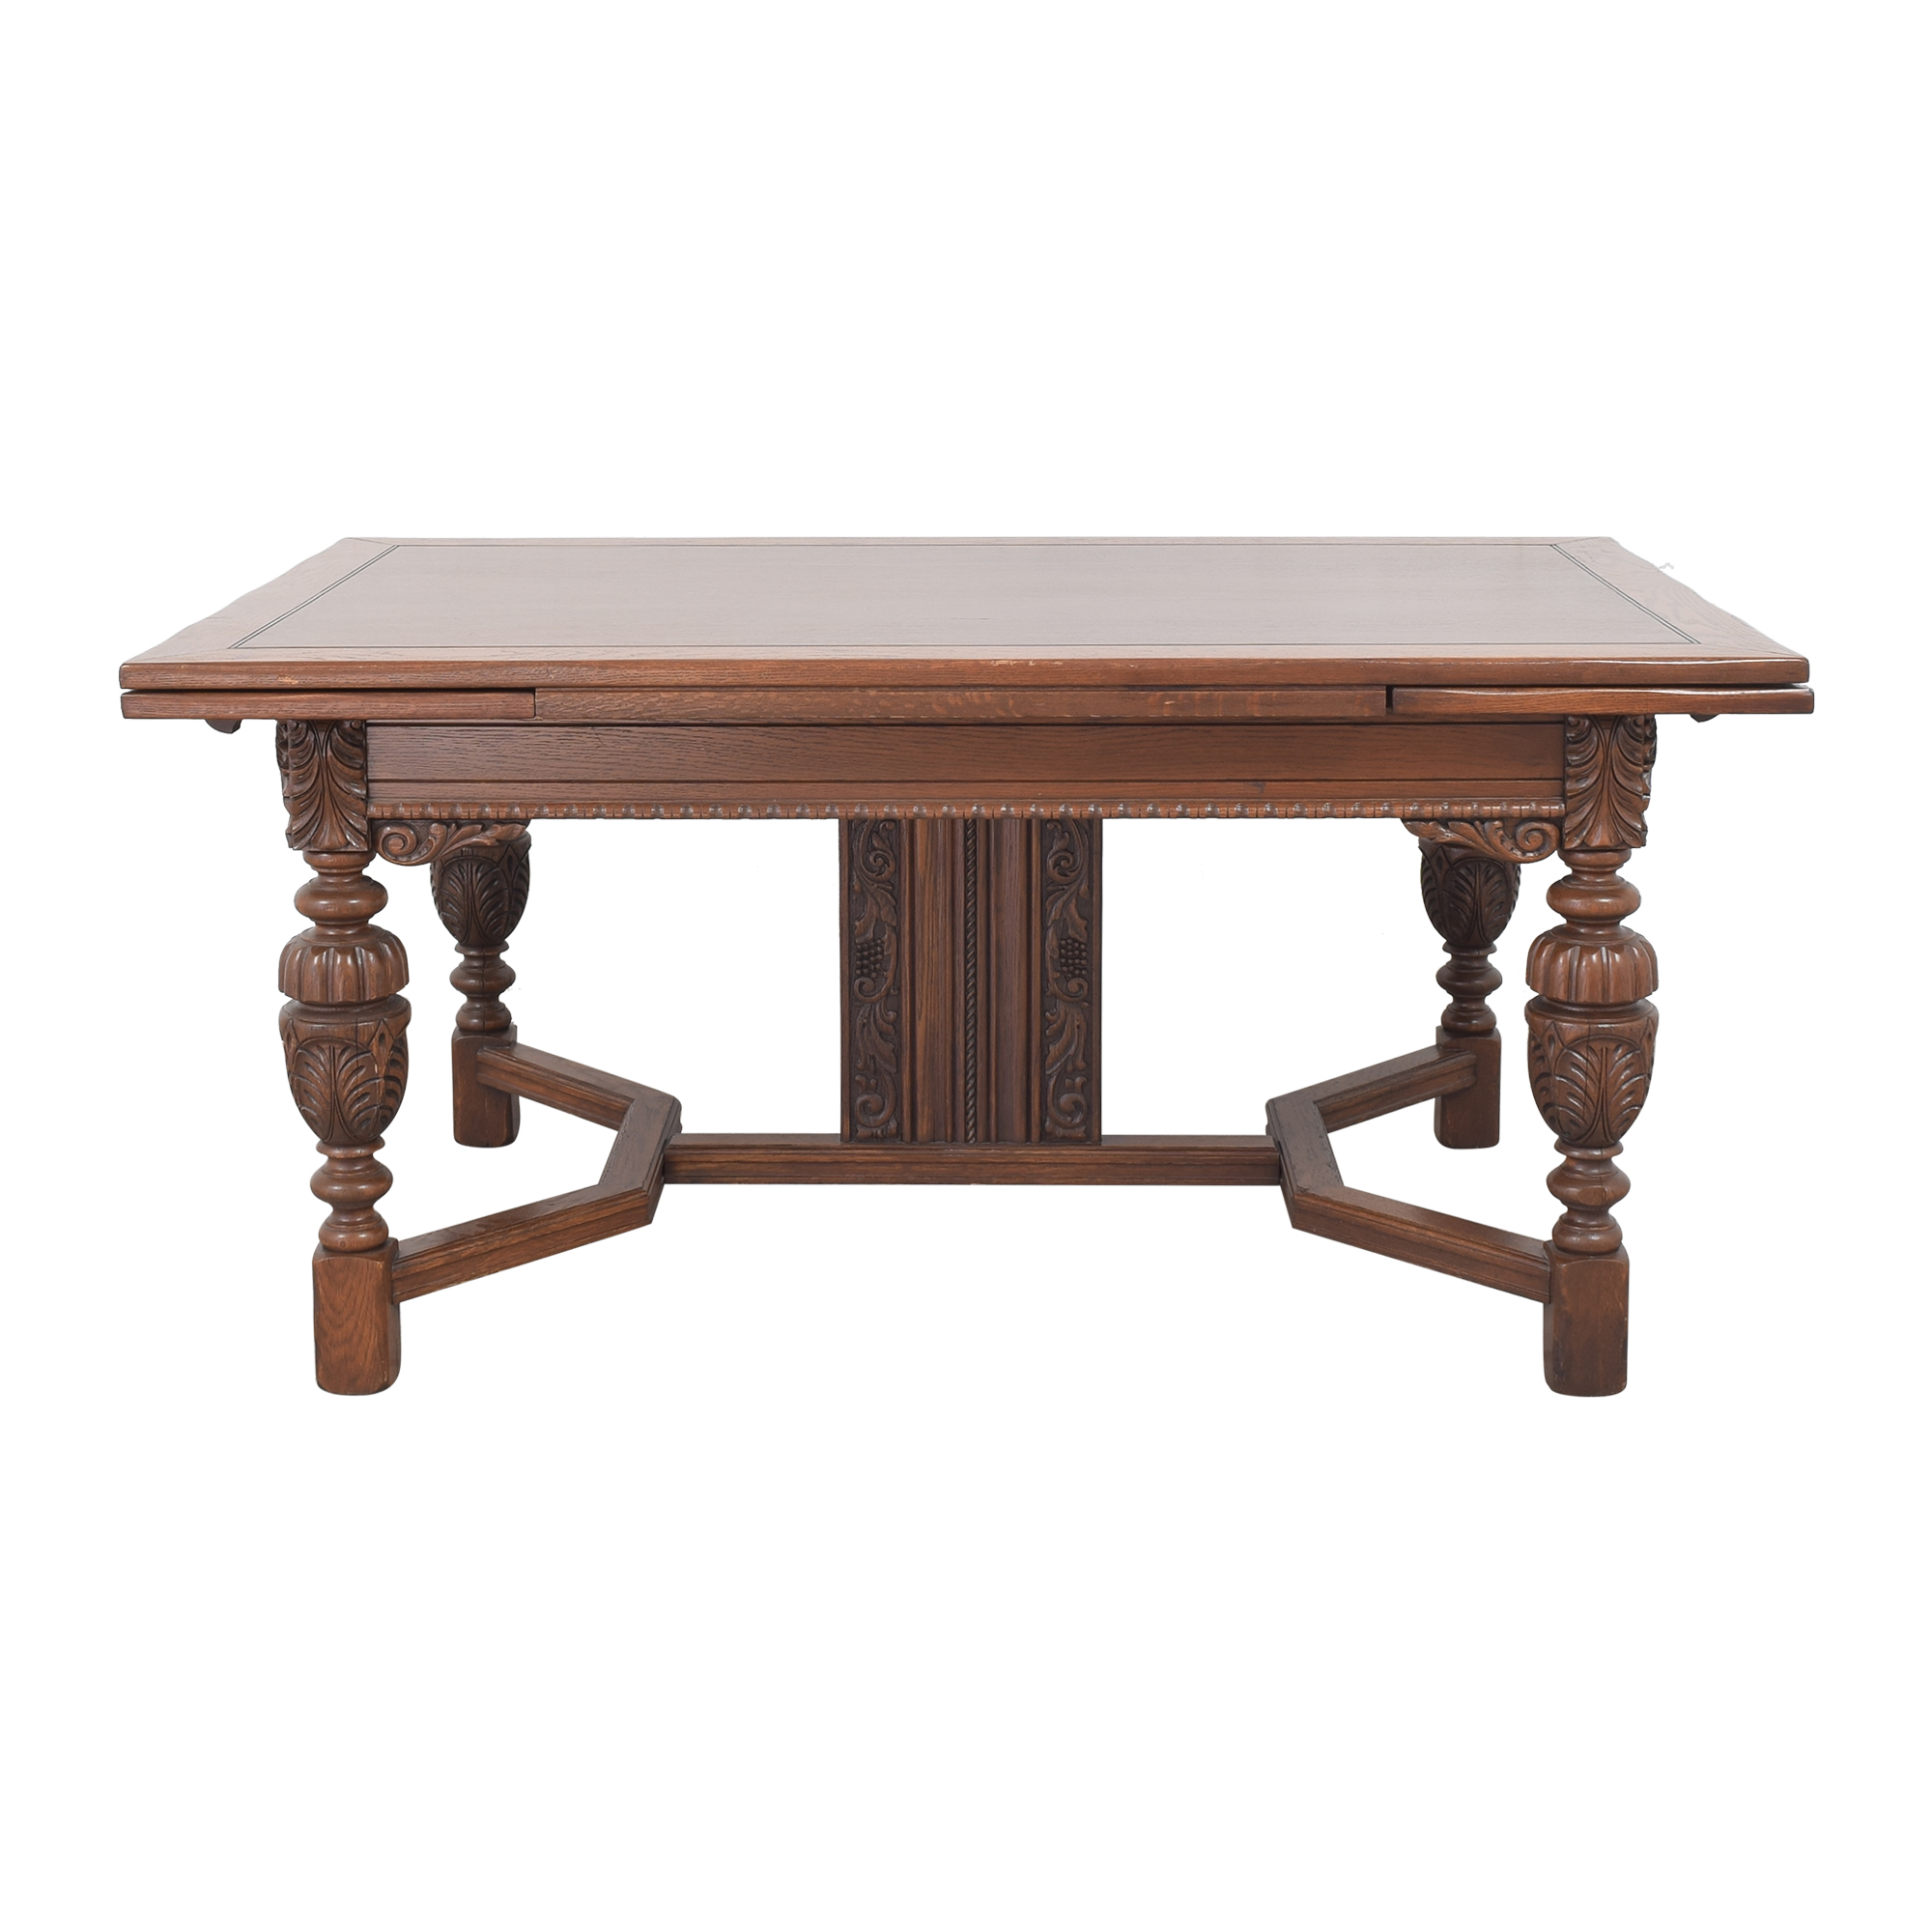 Stiehl Furniture Stiehl Furniture Extendable Trestle Dining Table ma